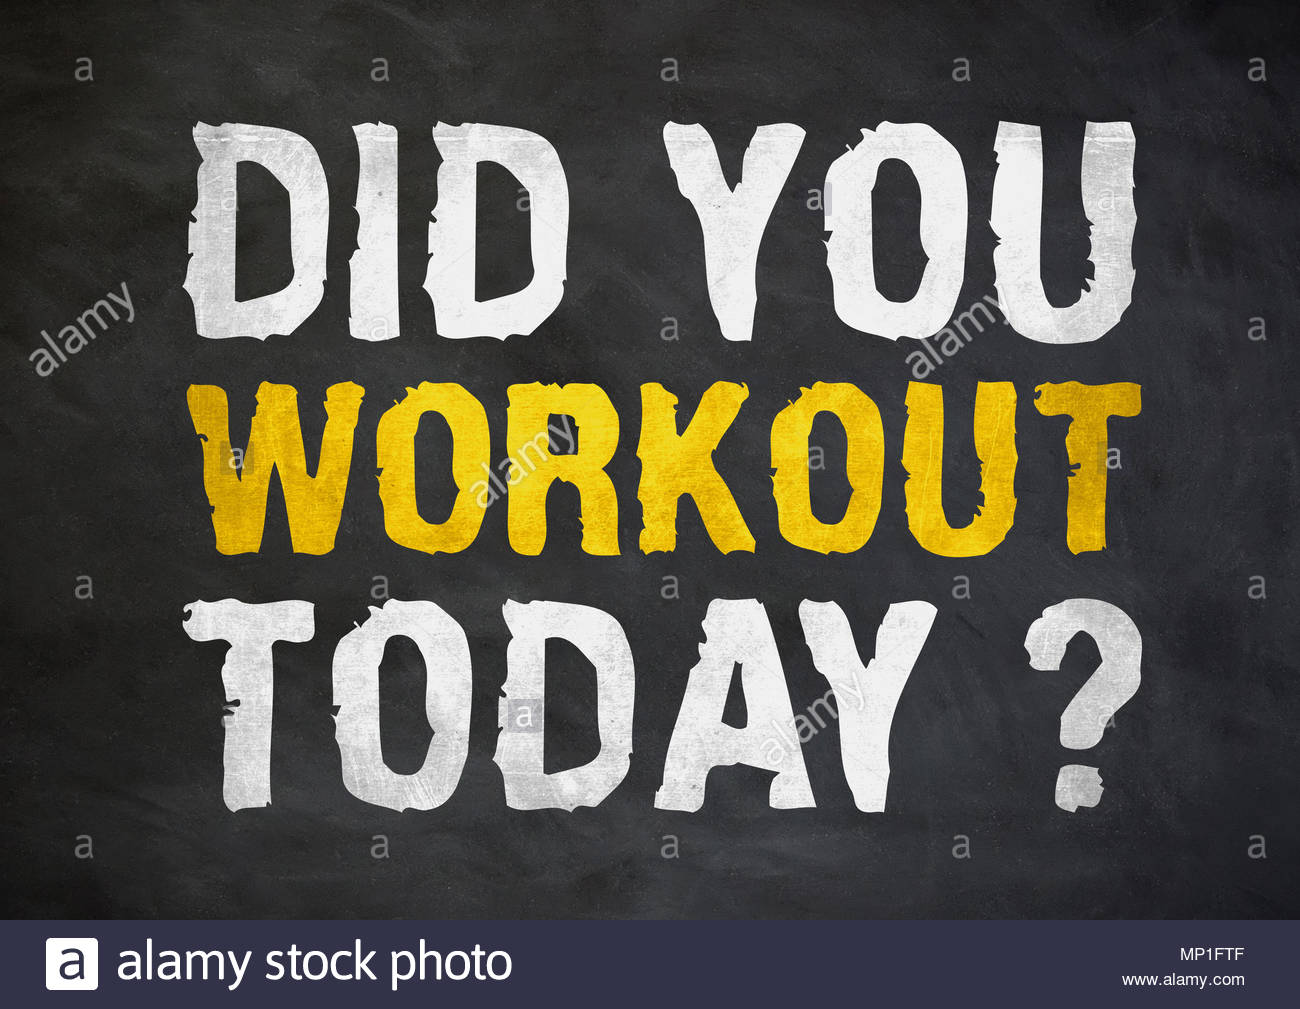 Did you workout today - fitness motivational quote - Stock Image